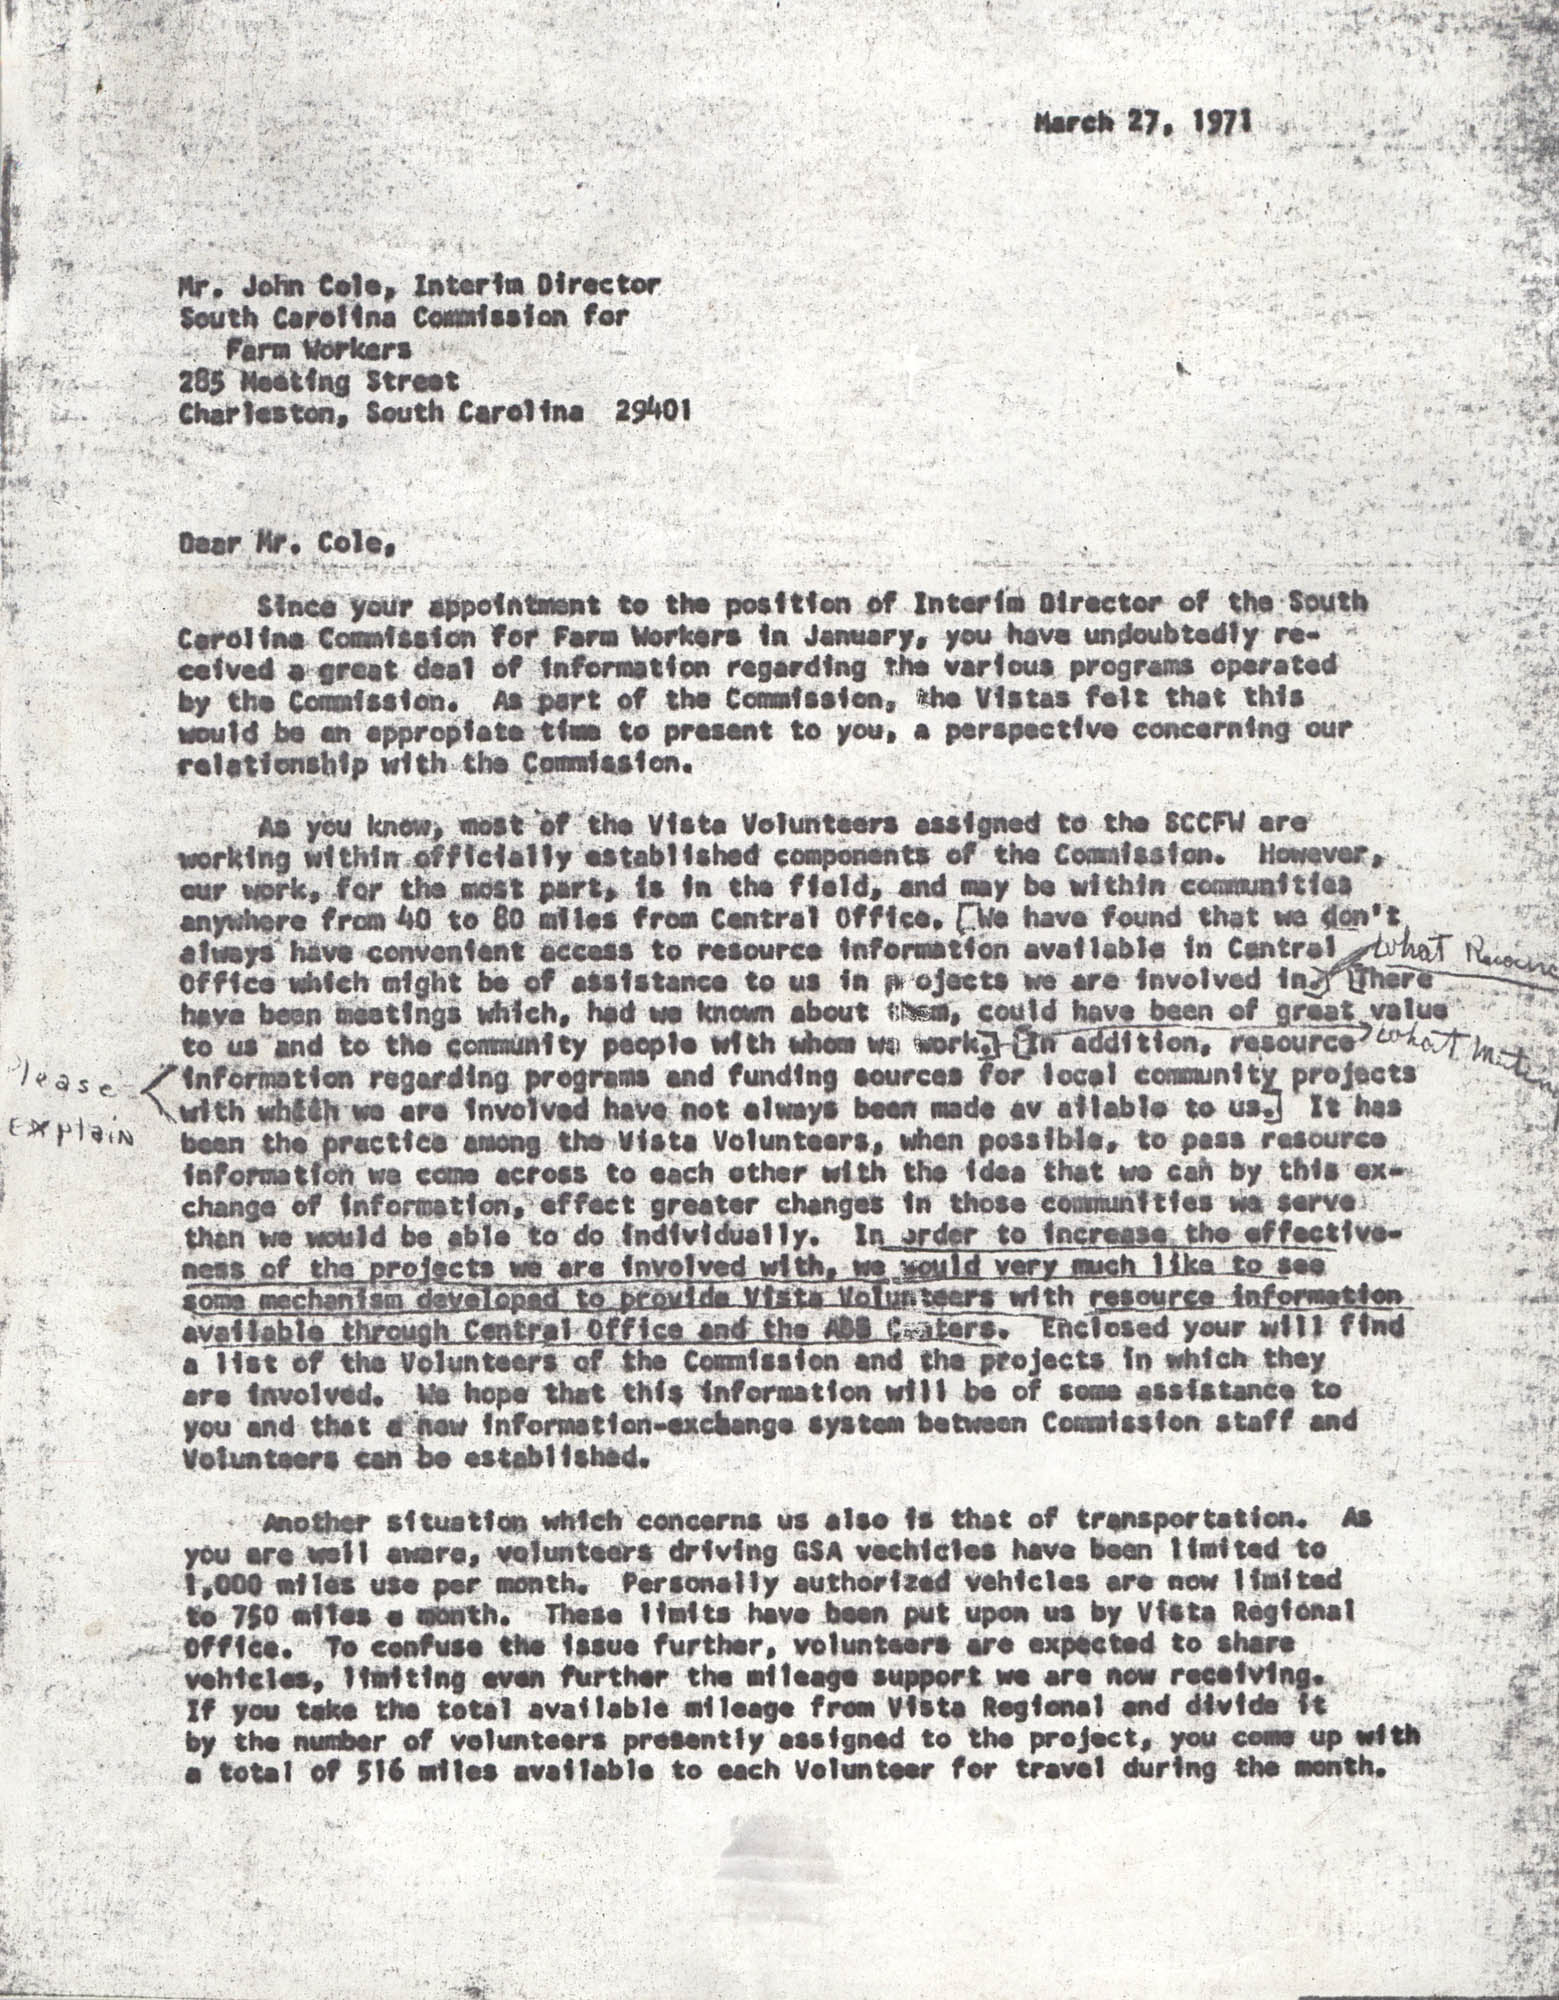 Letter from VISTA Staff to John Cole, March 27, 1971